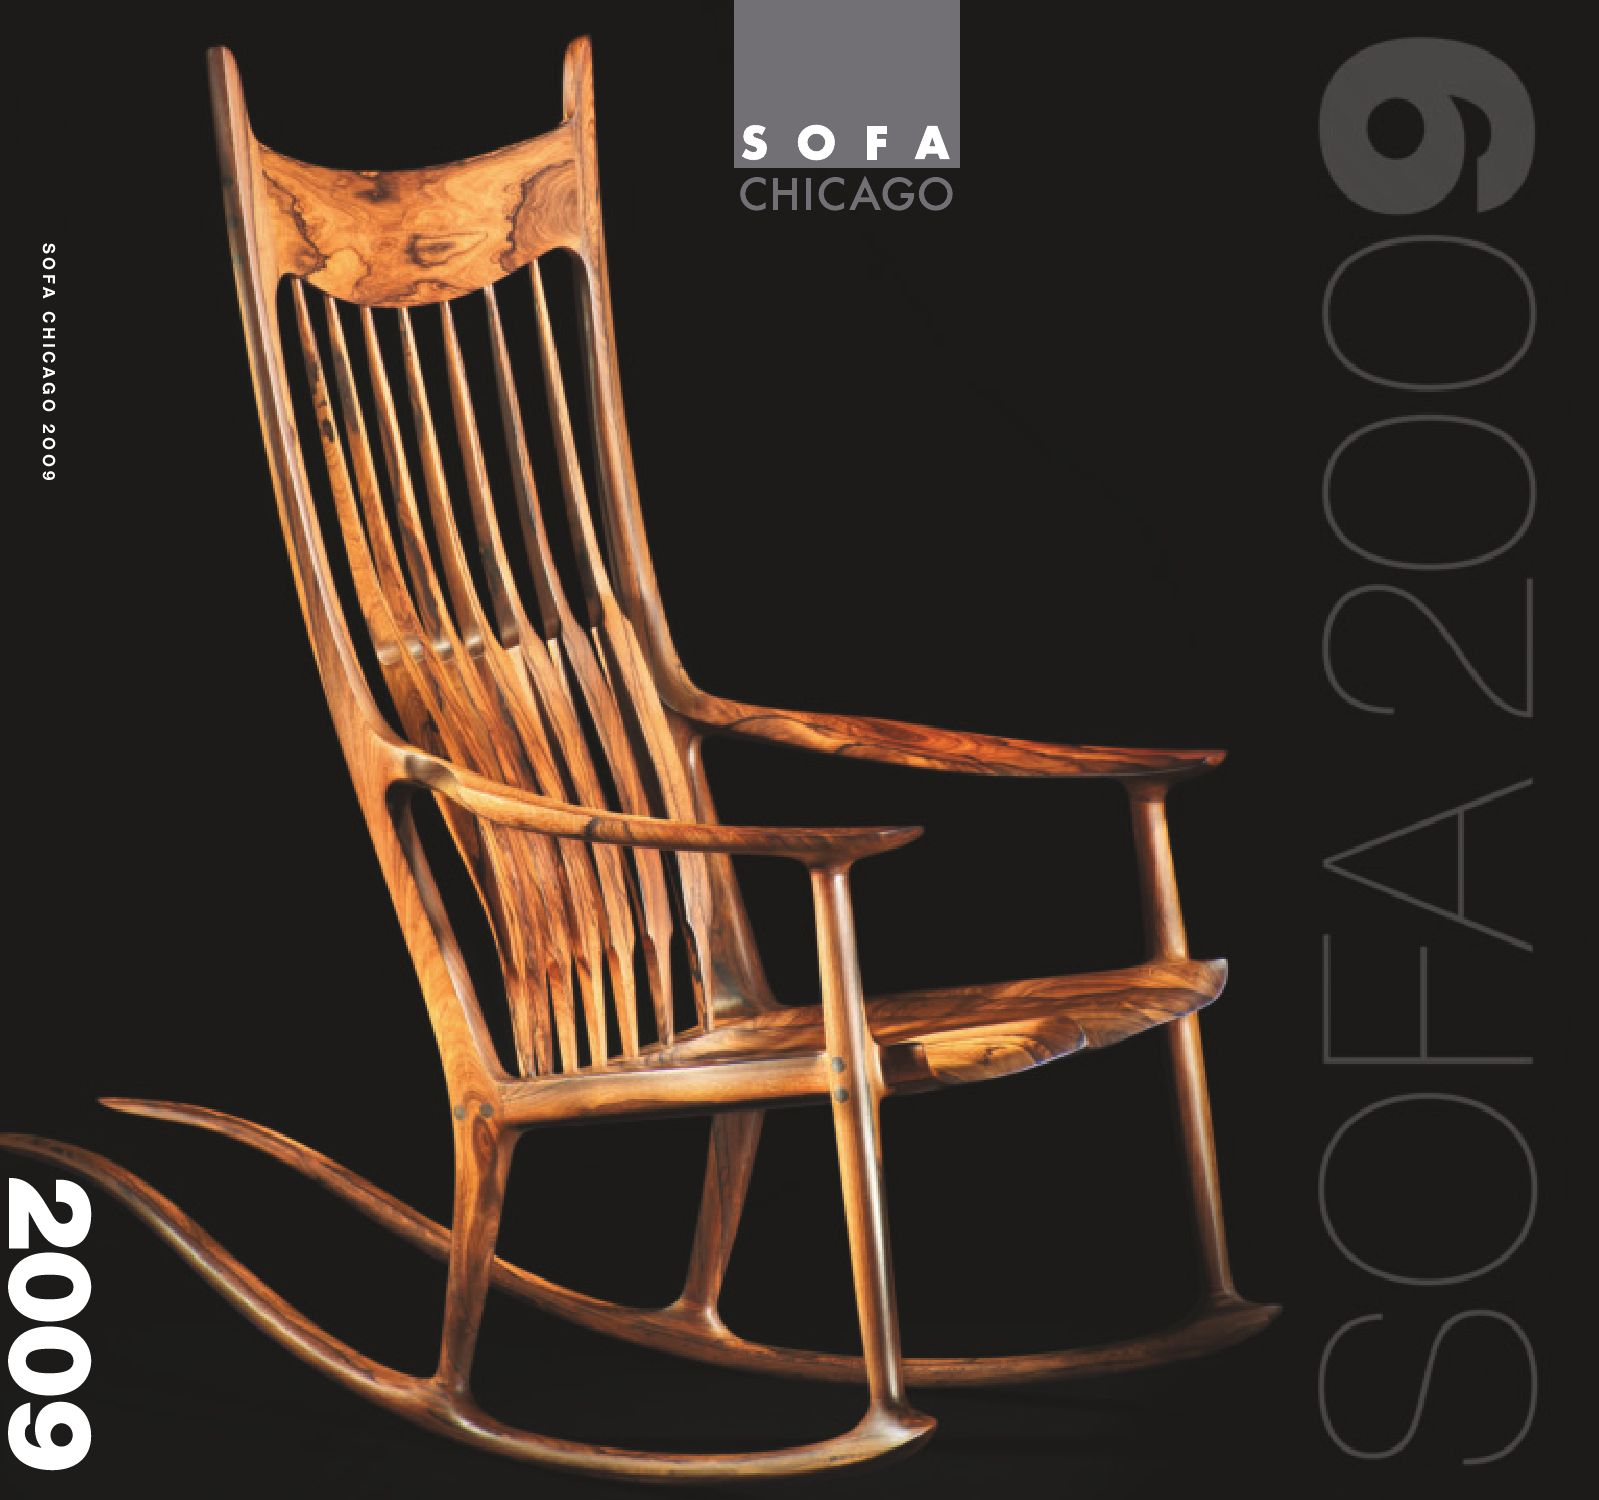 39c283102899 SOFA CHICAGO 2009 Catalog by SOFA CHICAGO produced by Urban ...